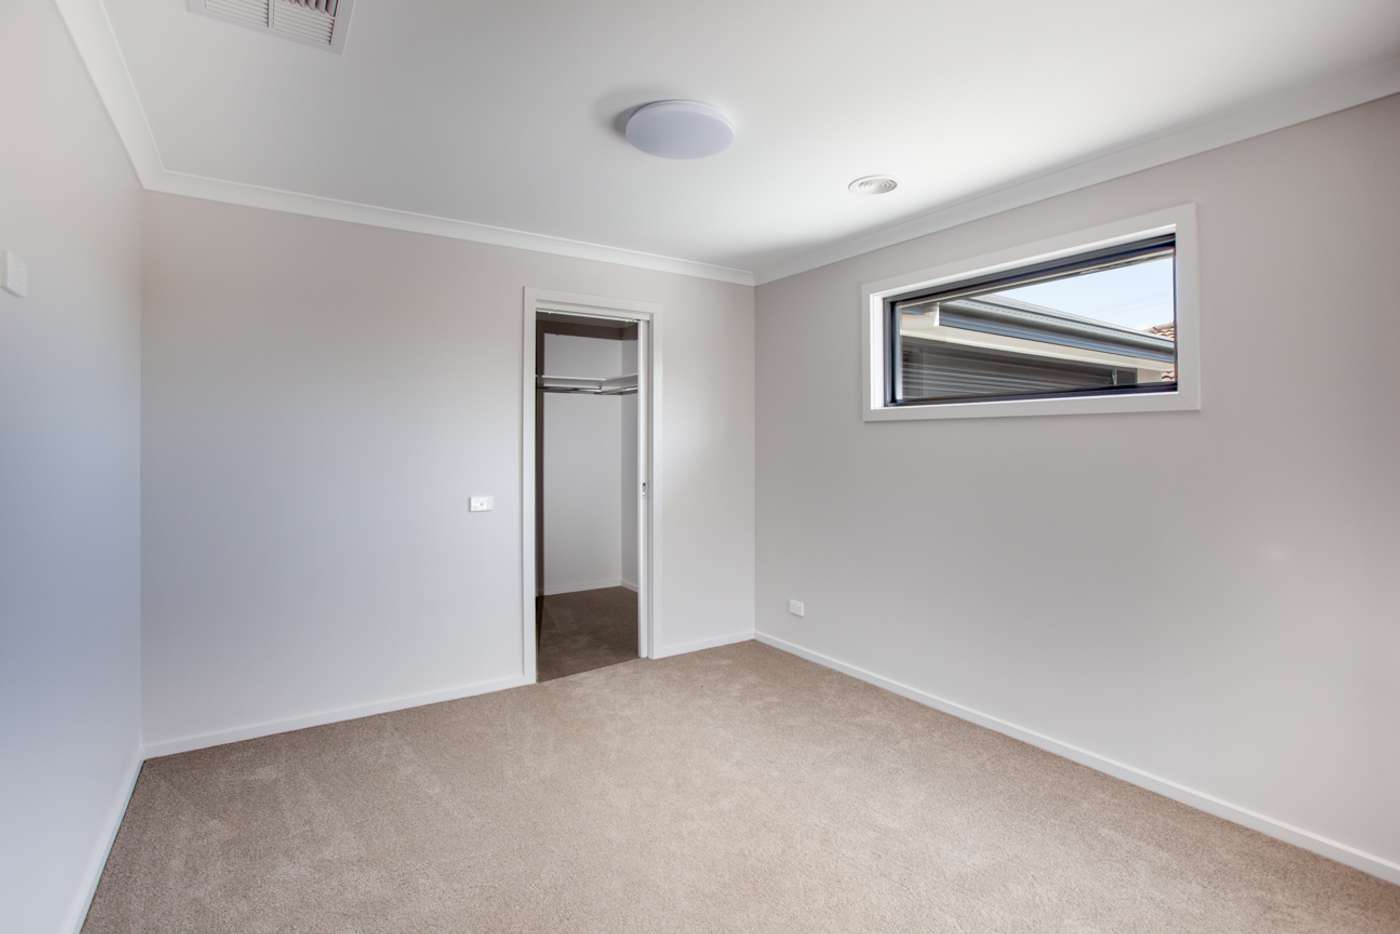 Sixth view of Homely townhouse listing, 2/89 Mitchell Street, Wodonga VIC 3690